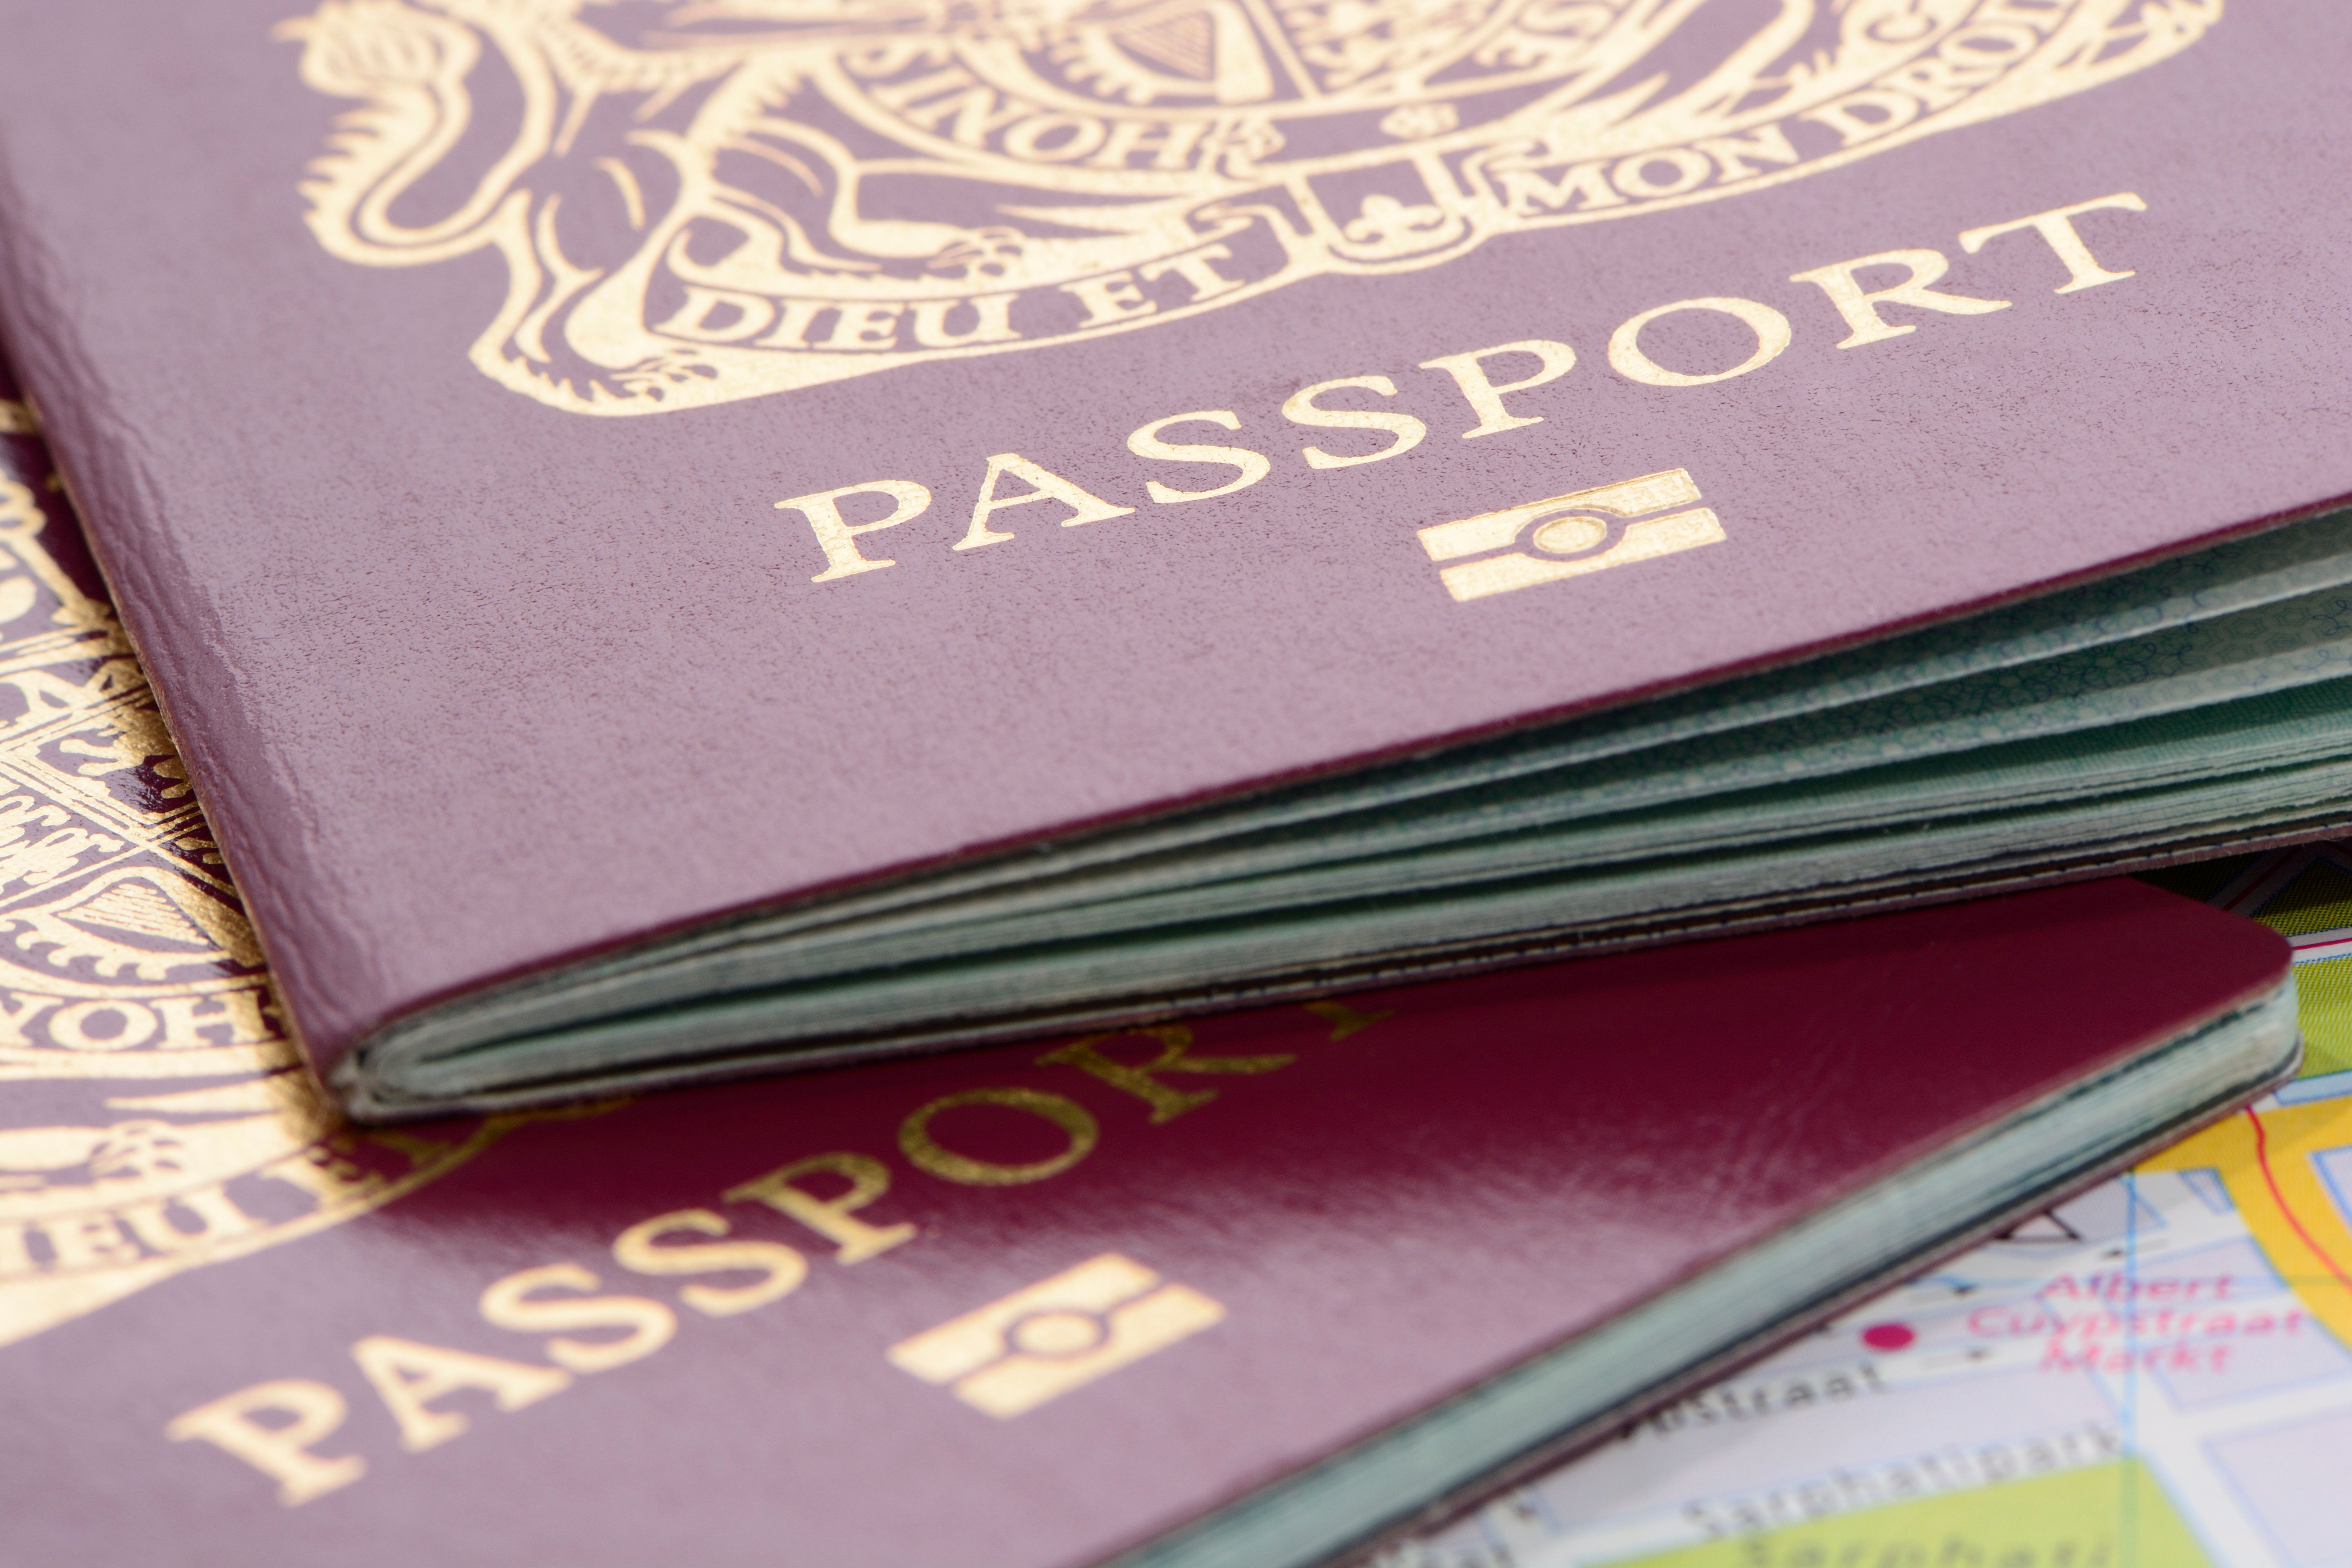 British Passports Could Reportedly Be Blue Again After Brexit, But Not Everyone Is